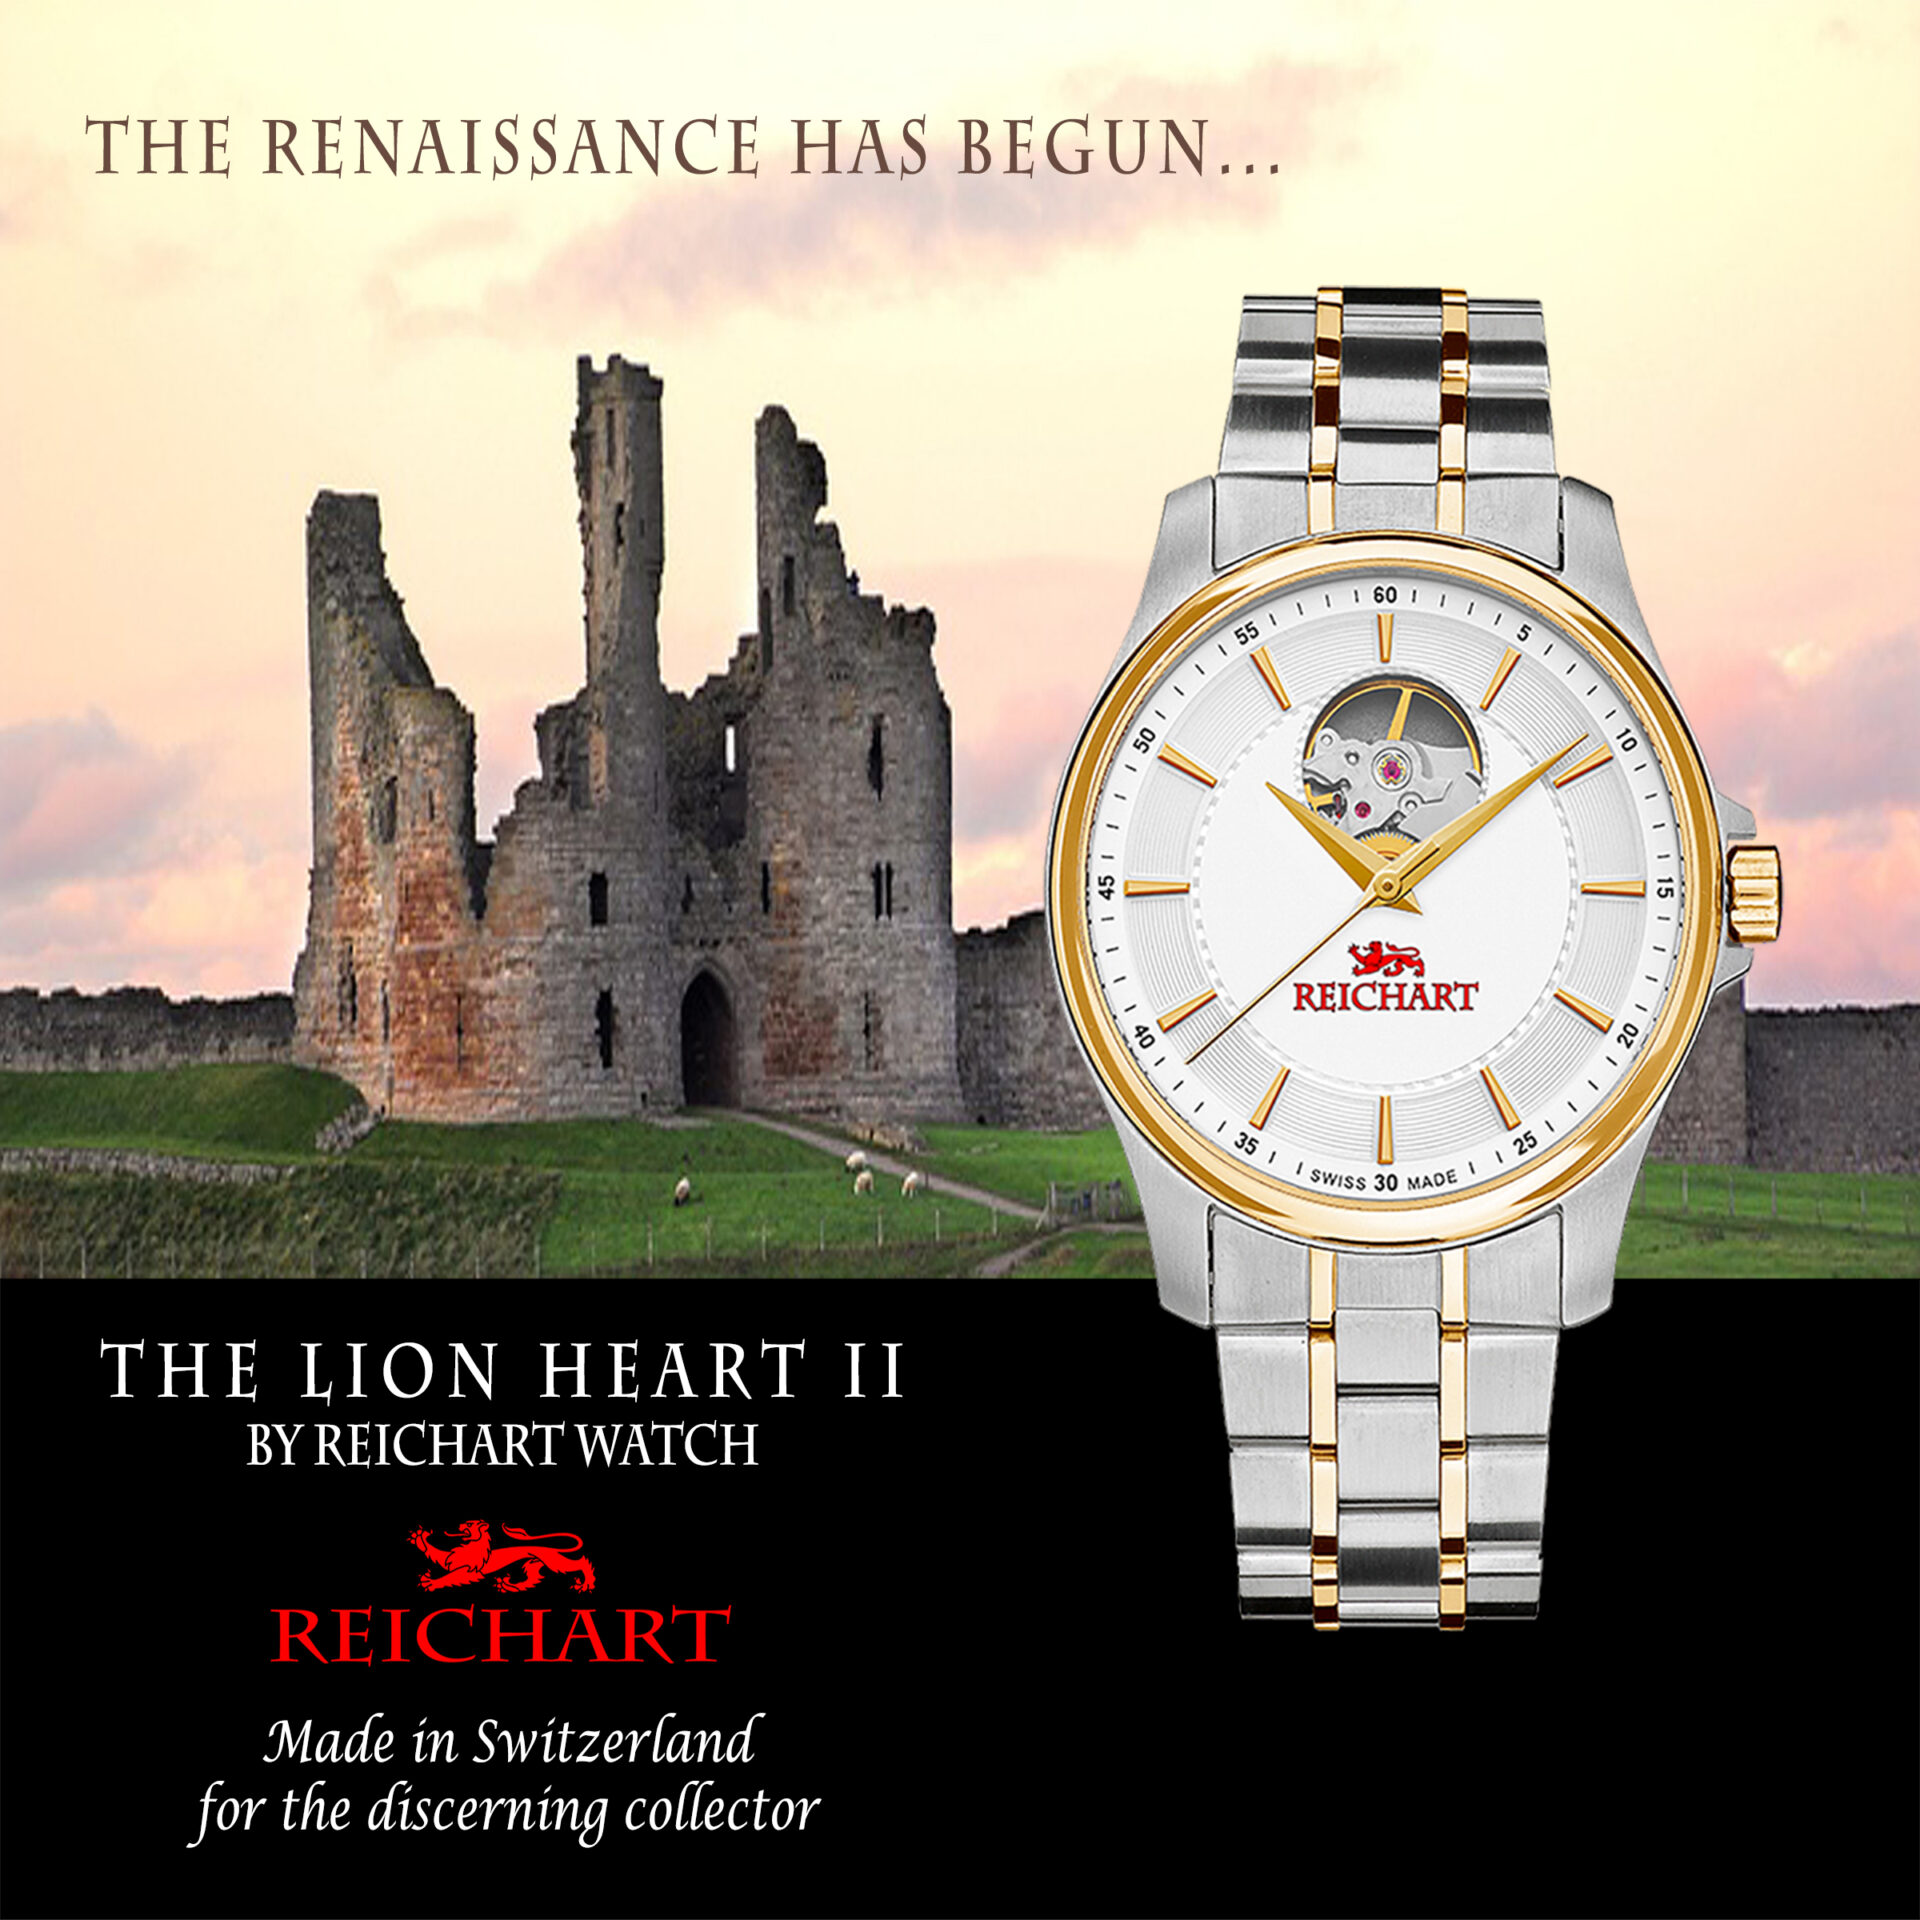 The Lion Heart II by Reichart Watch